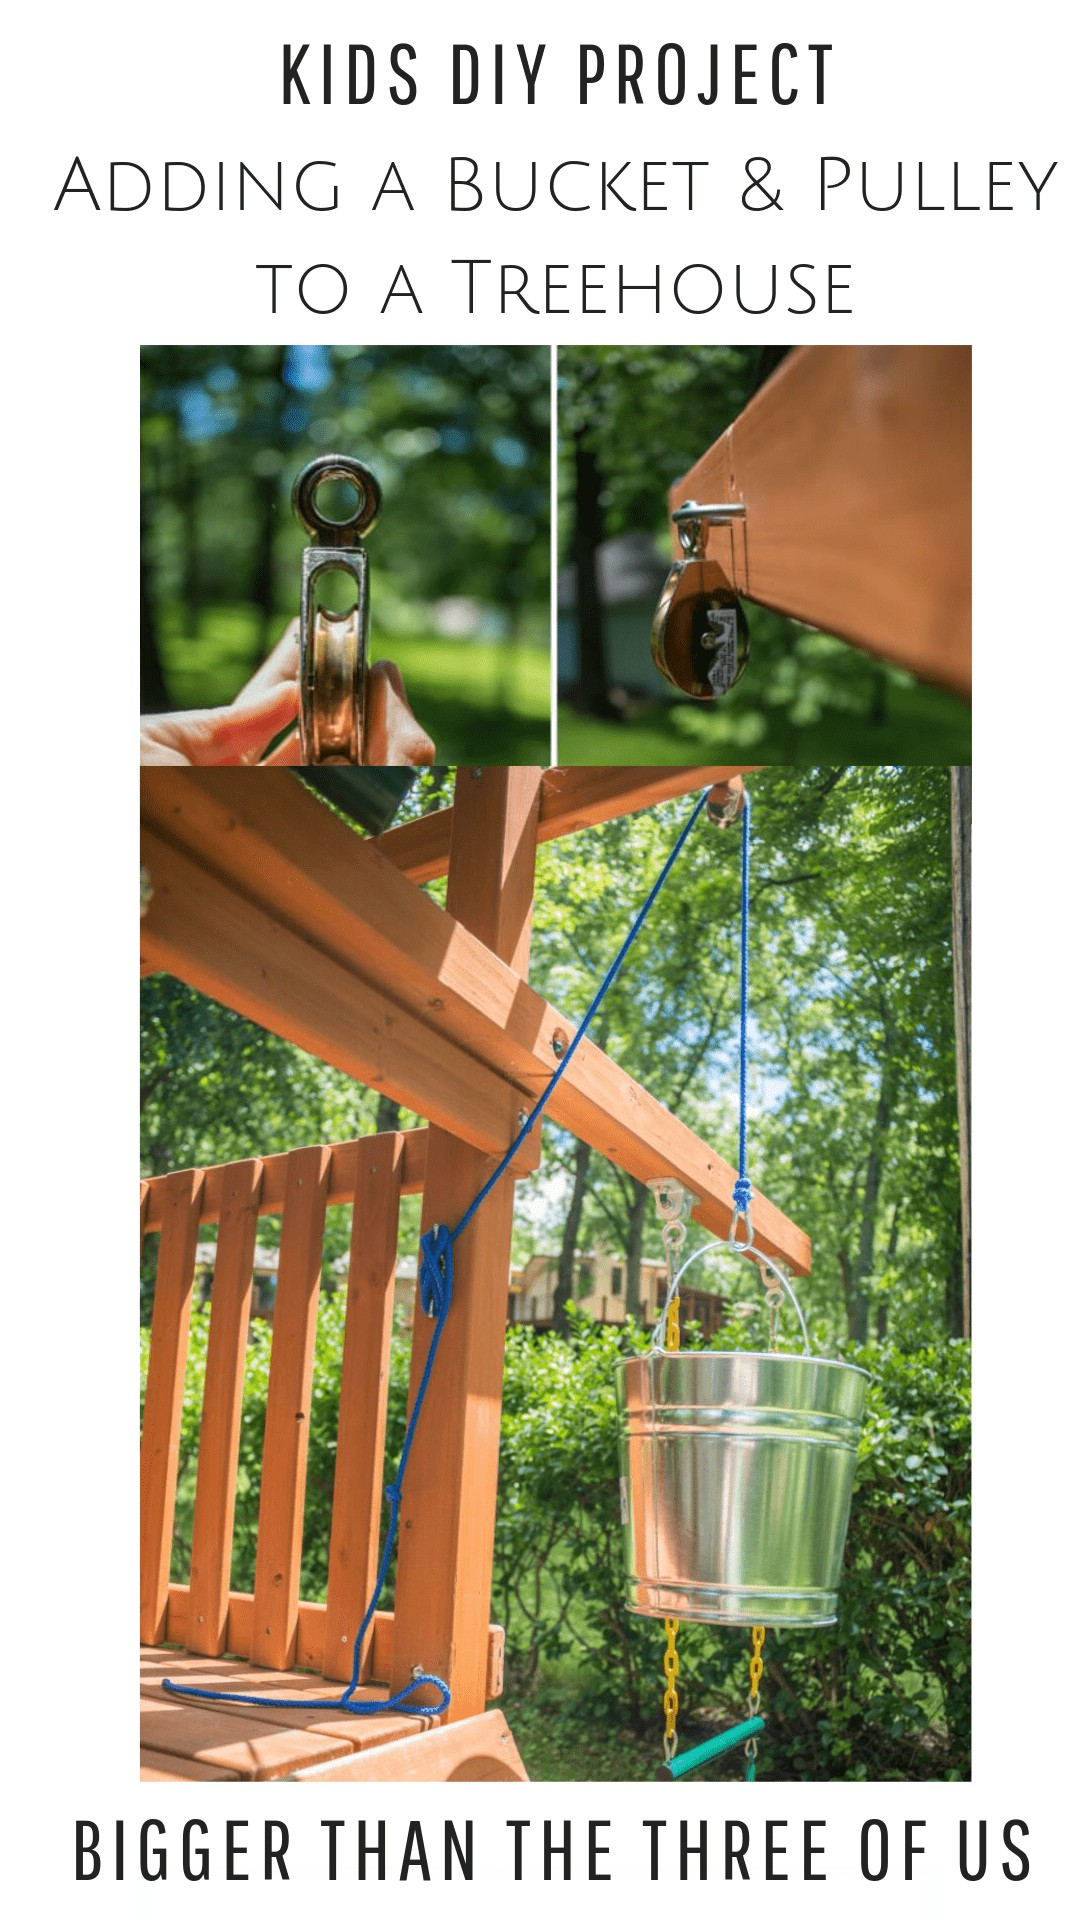 Kids Pulley Project on Treehouse